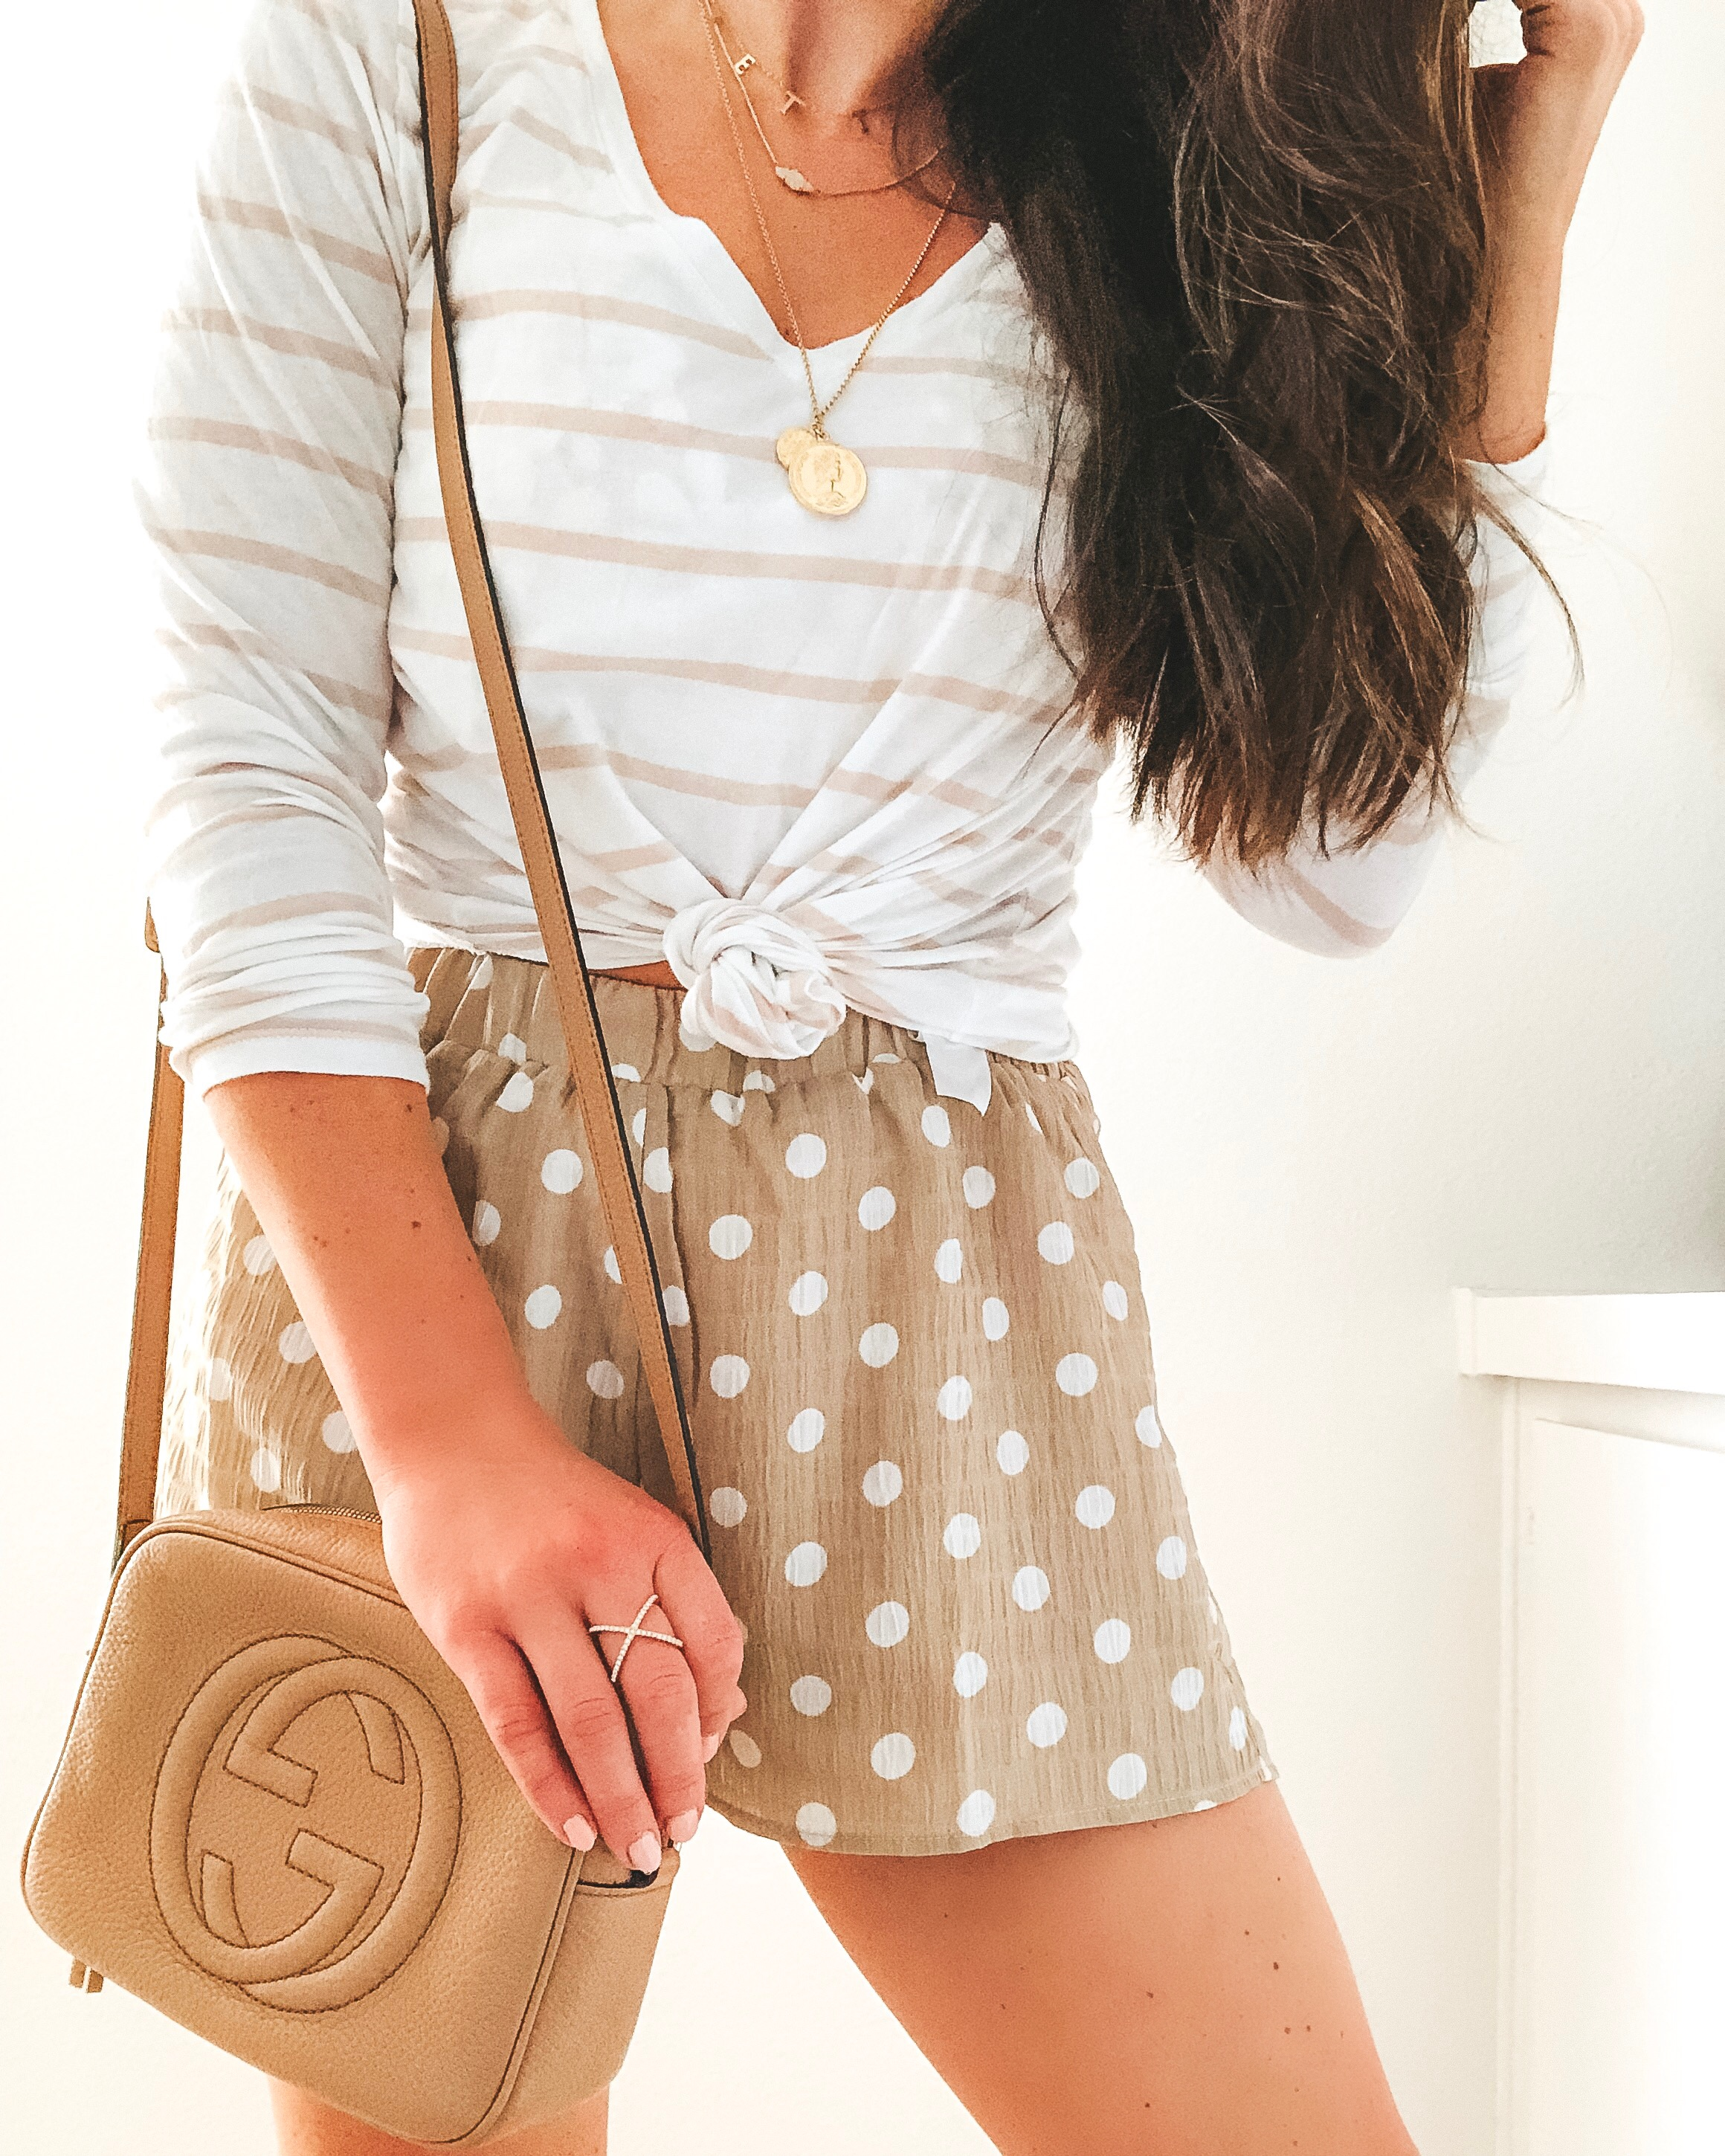 Superdown flutter shorts, Gucci soho disco bag, khaki and white stripe tee, and layered necklaces.  Cute neutral outfit for spring..jpg